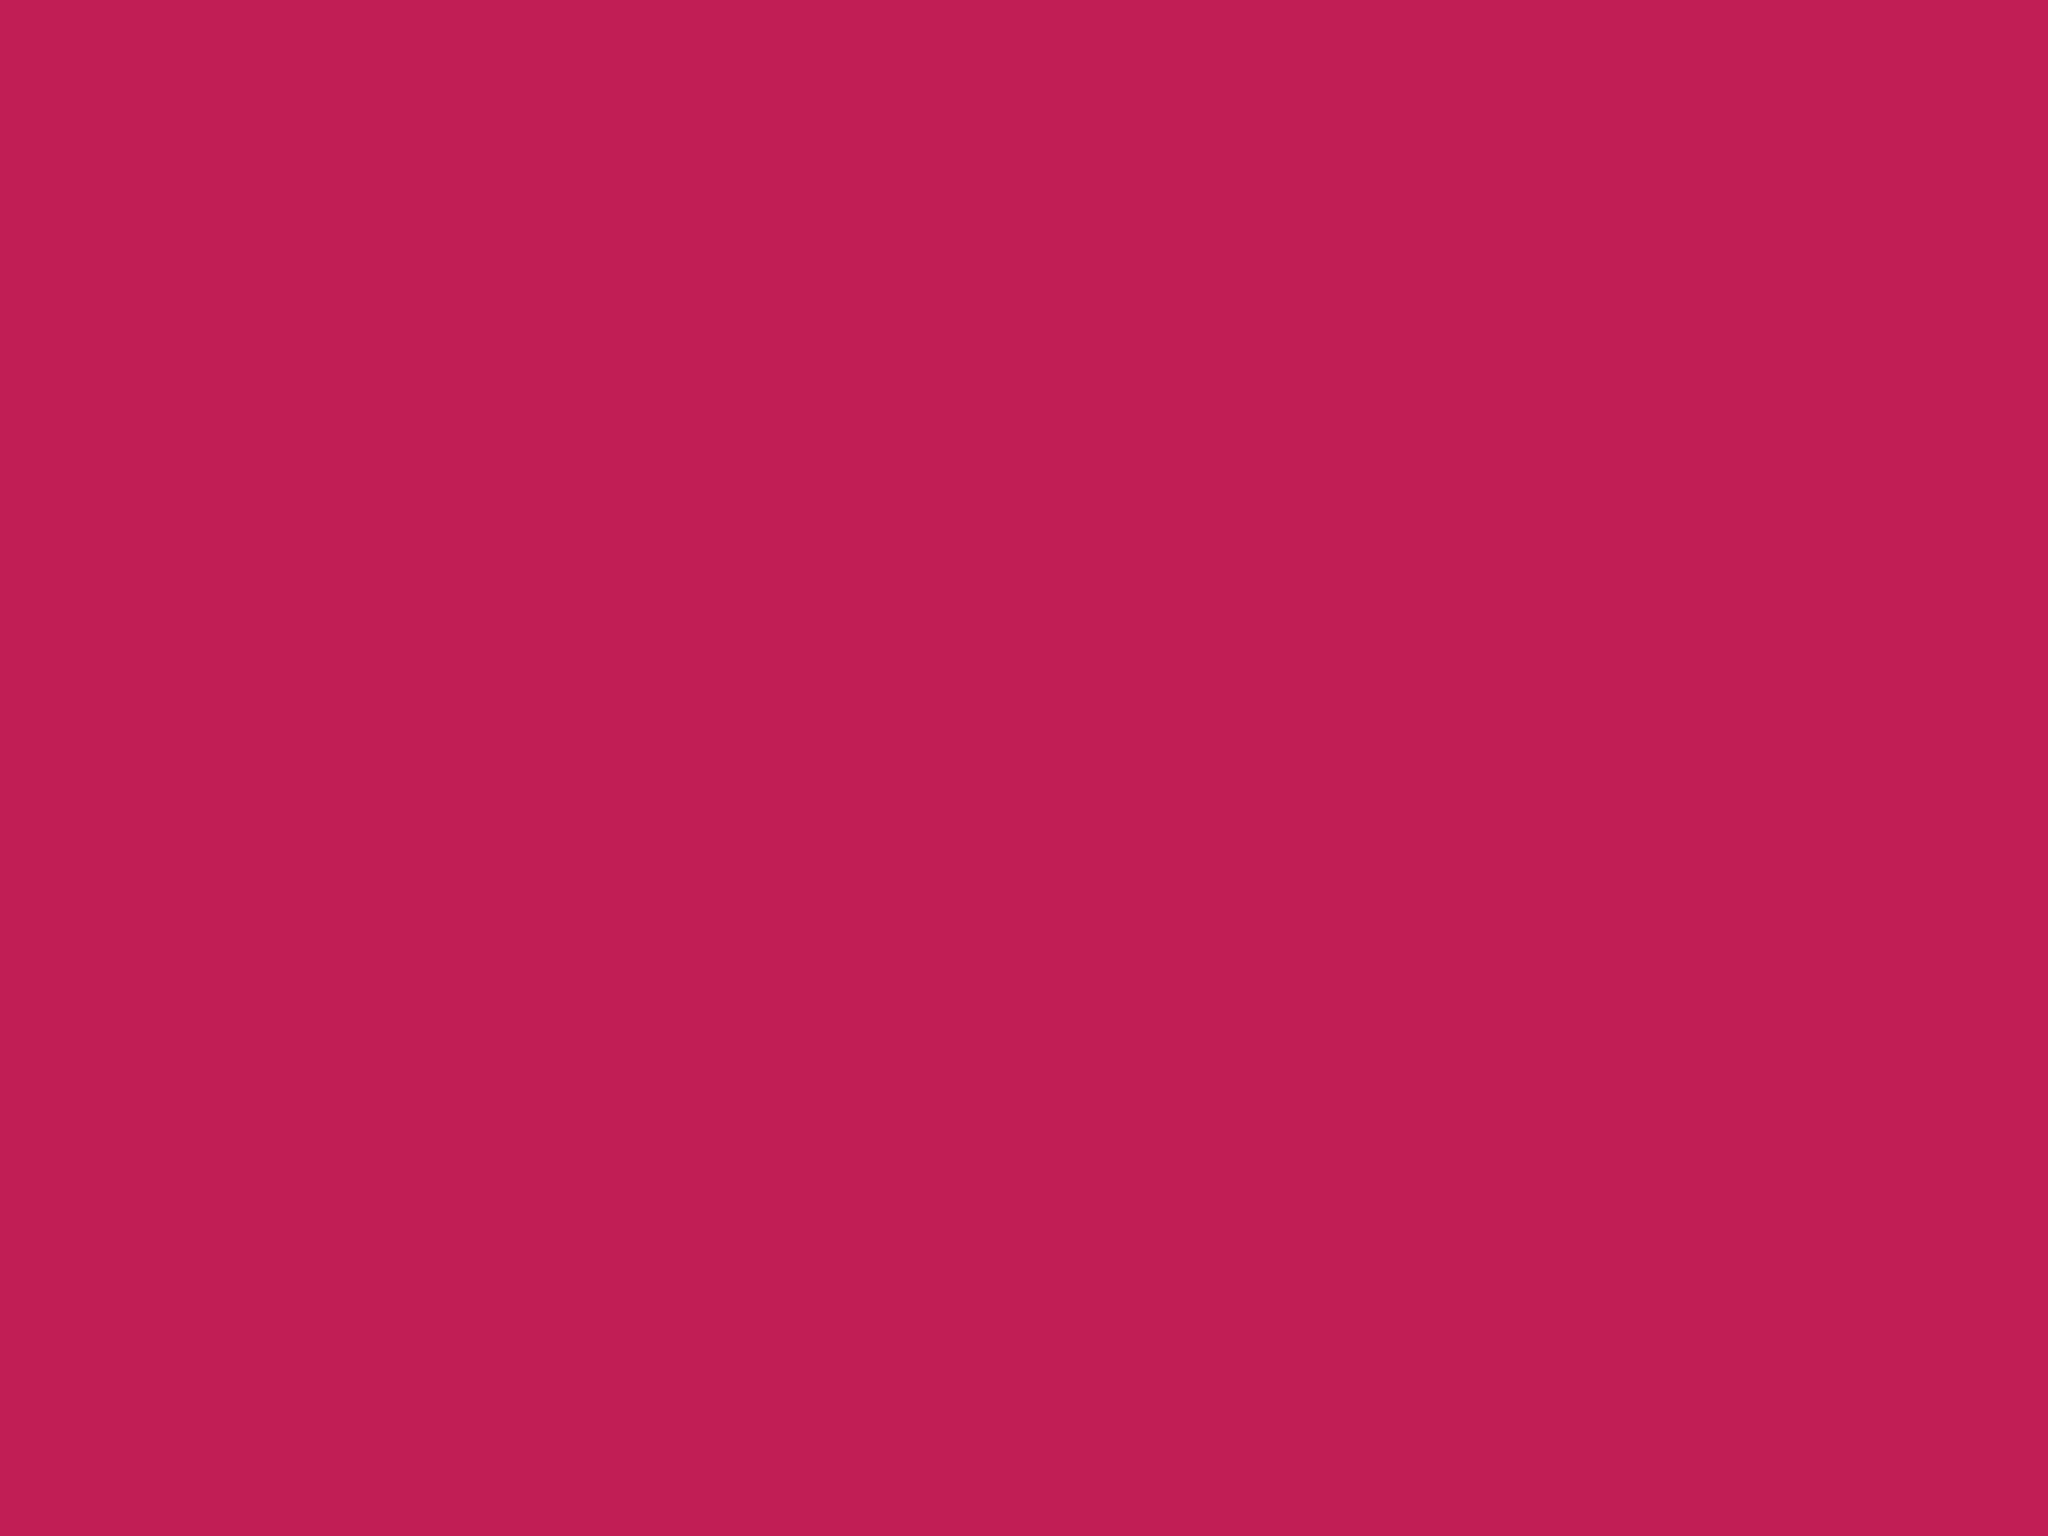 2048x1536 Rose Red Solid Color Background